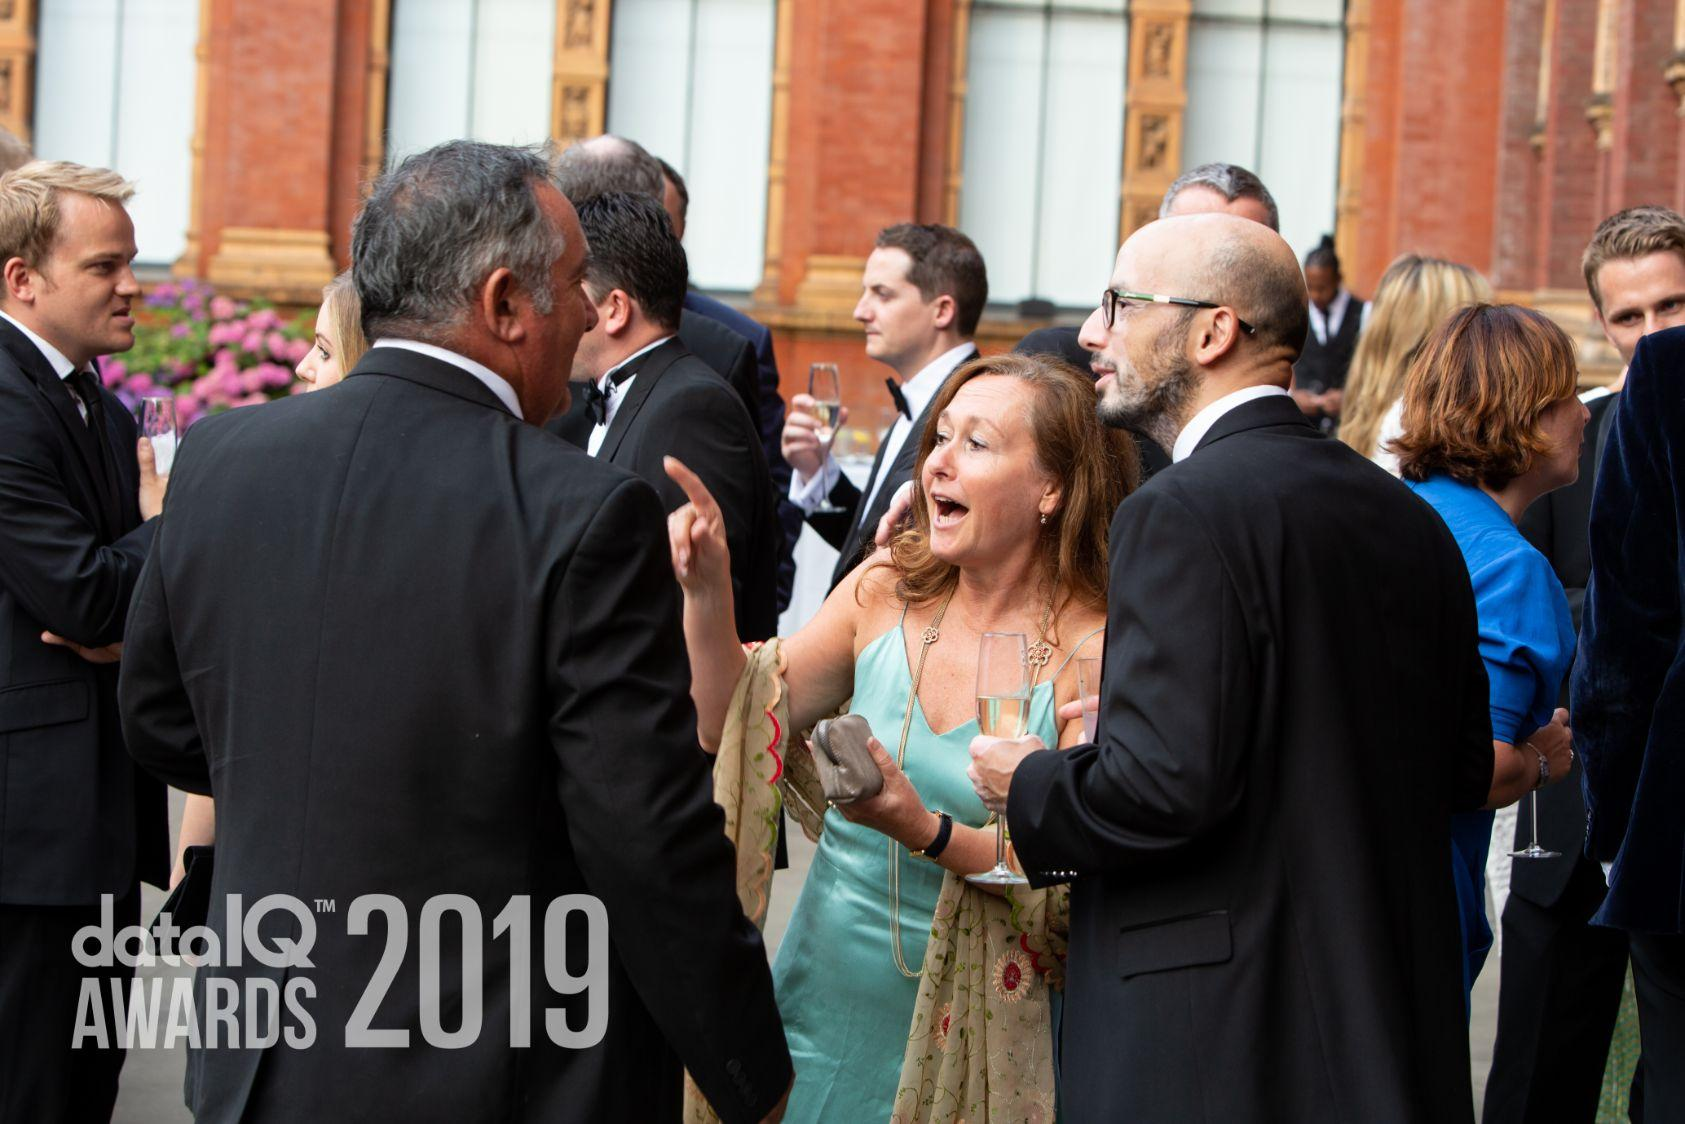 Awards 2019 Image 116